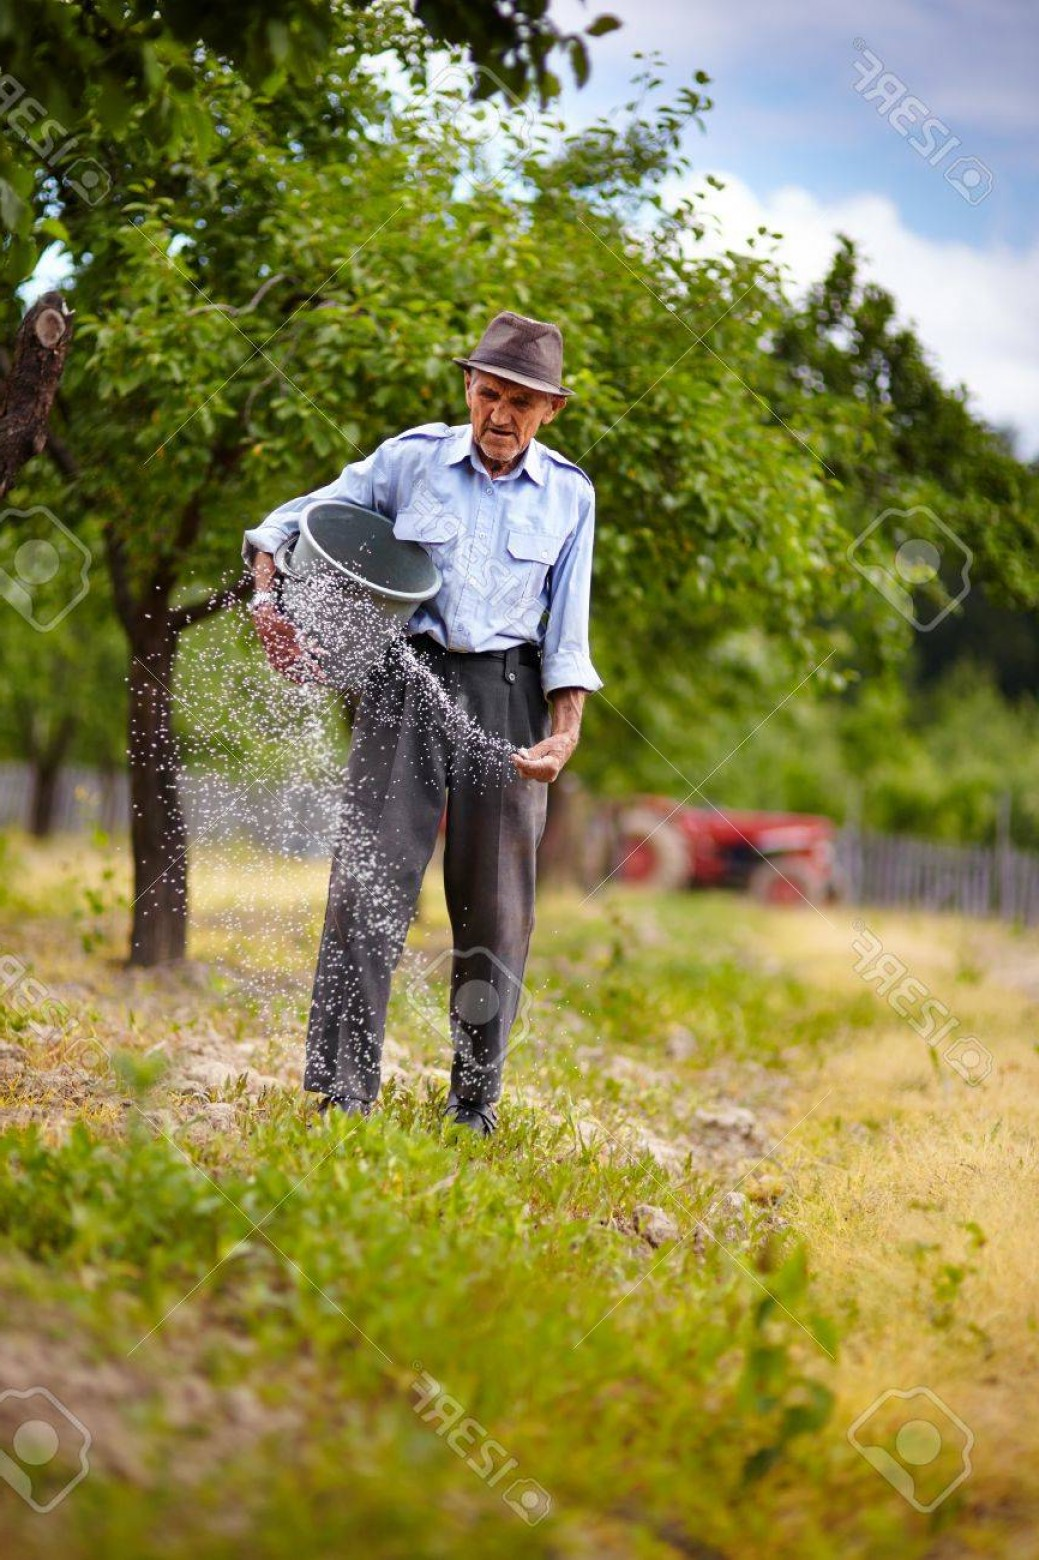 Vector 300 Fertilizer Spreading: Photosenior Farmer Doing Seasonal Work Spreading Fertilizer In A Plum Trees Orchard